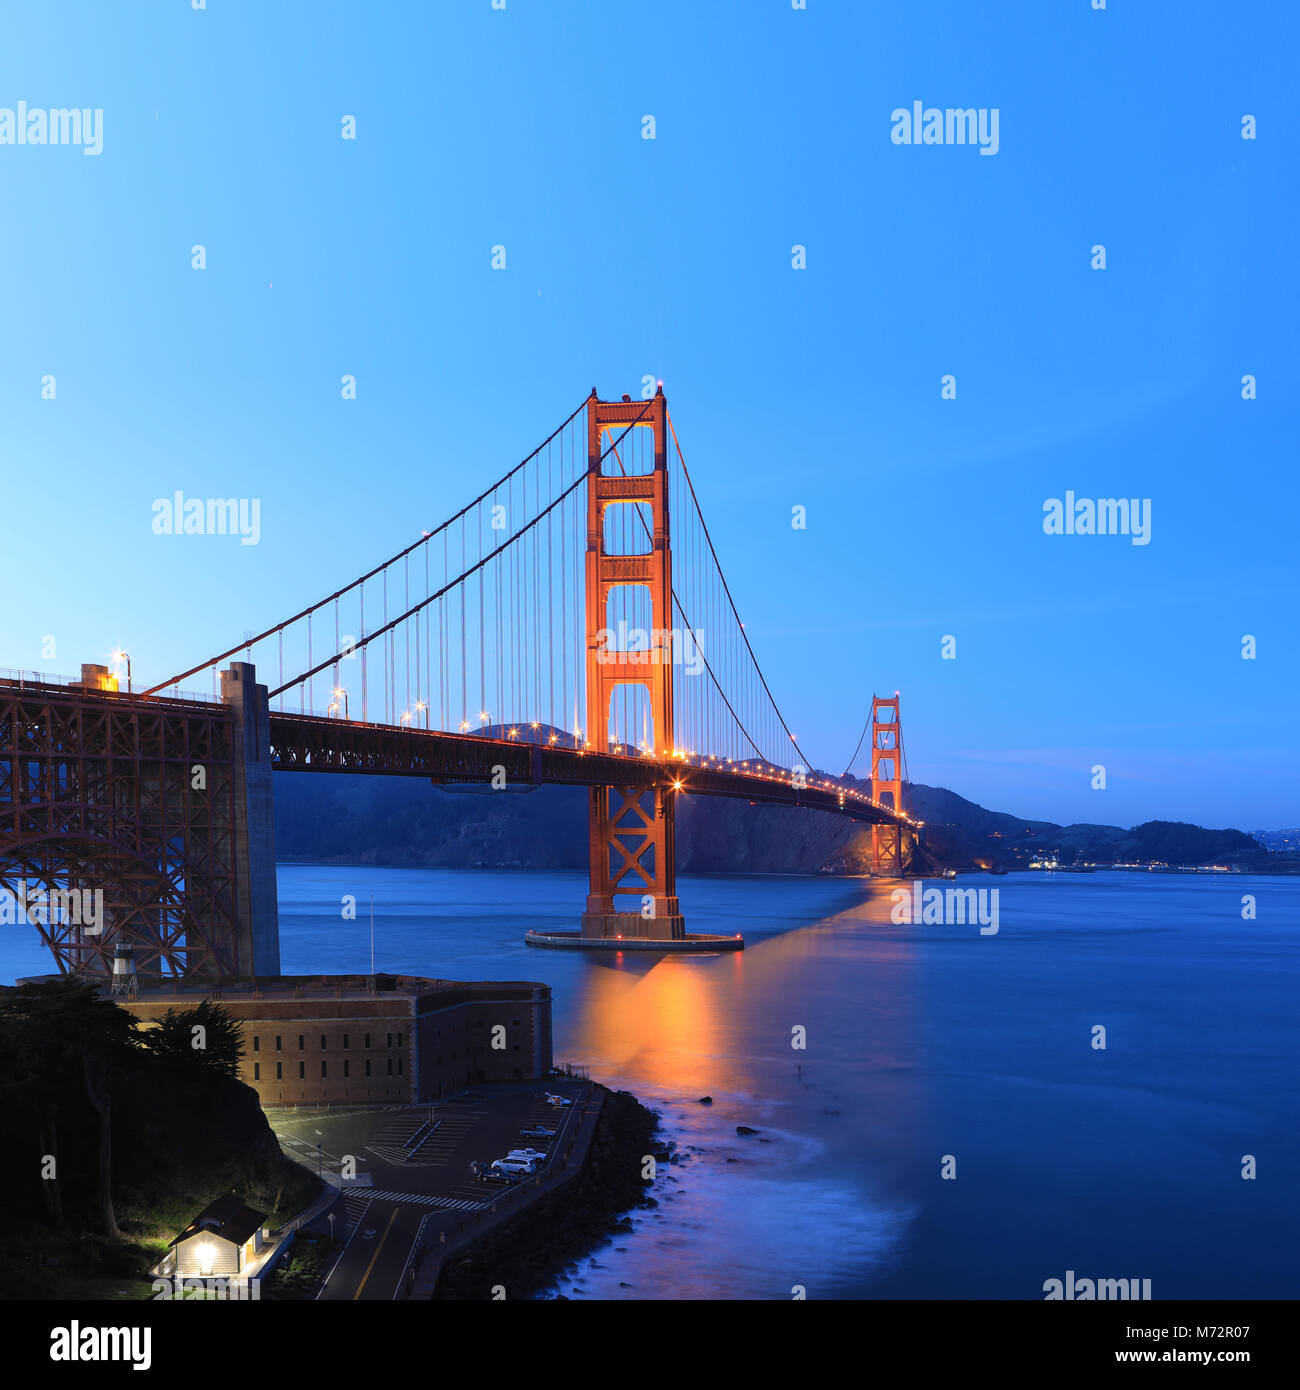 A Square format of the Golden Gate Bridge as darkness falls - Stock Image